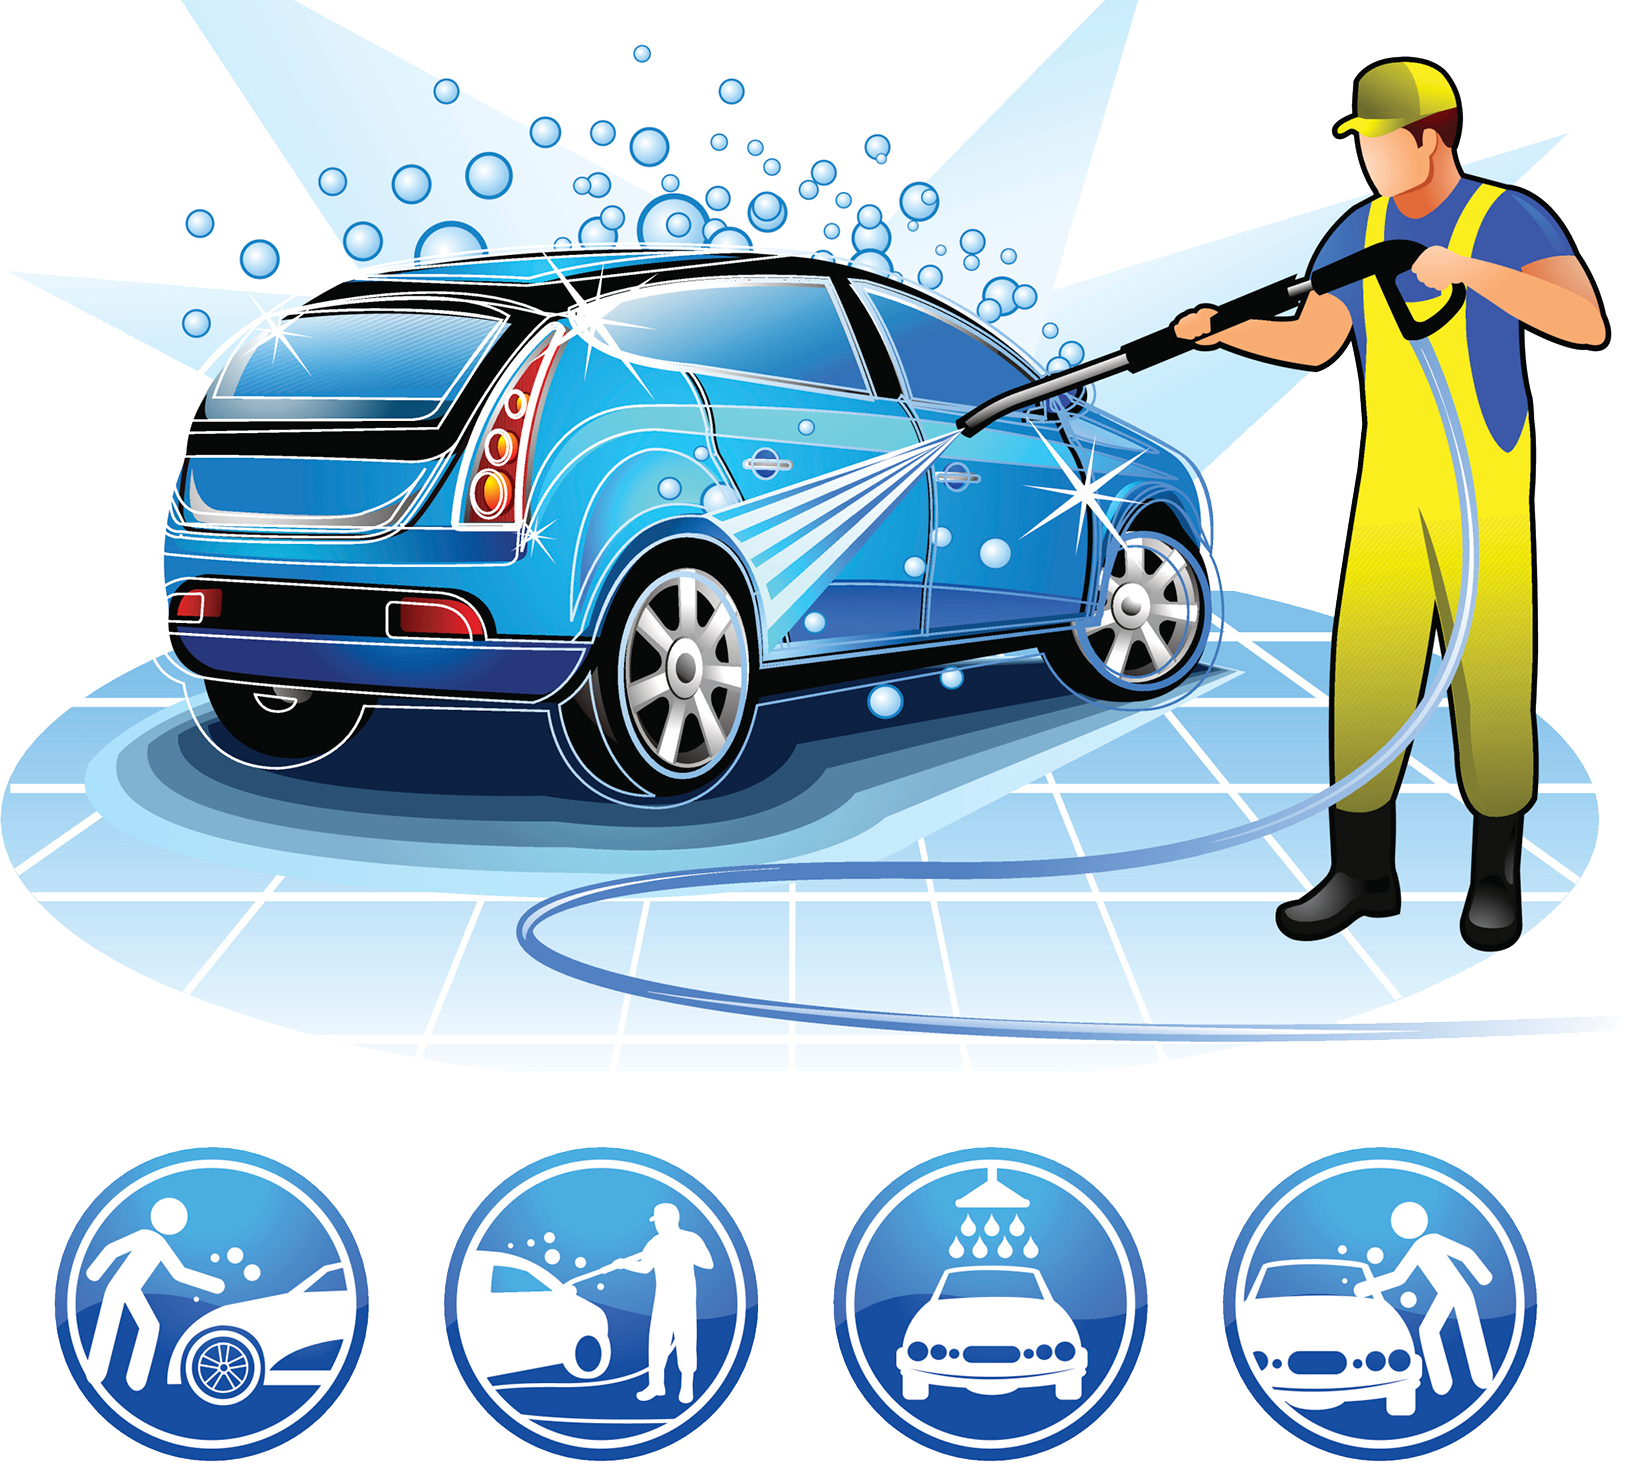 Car wash png. Cartoon illustration beauty care